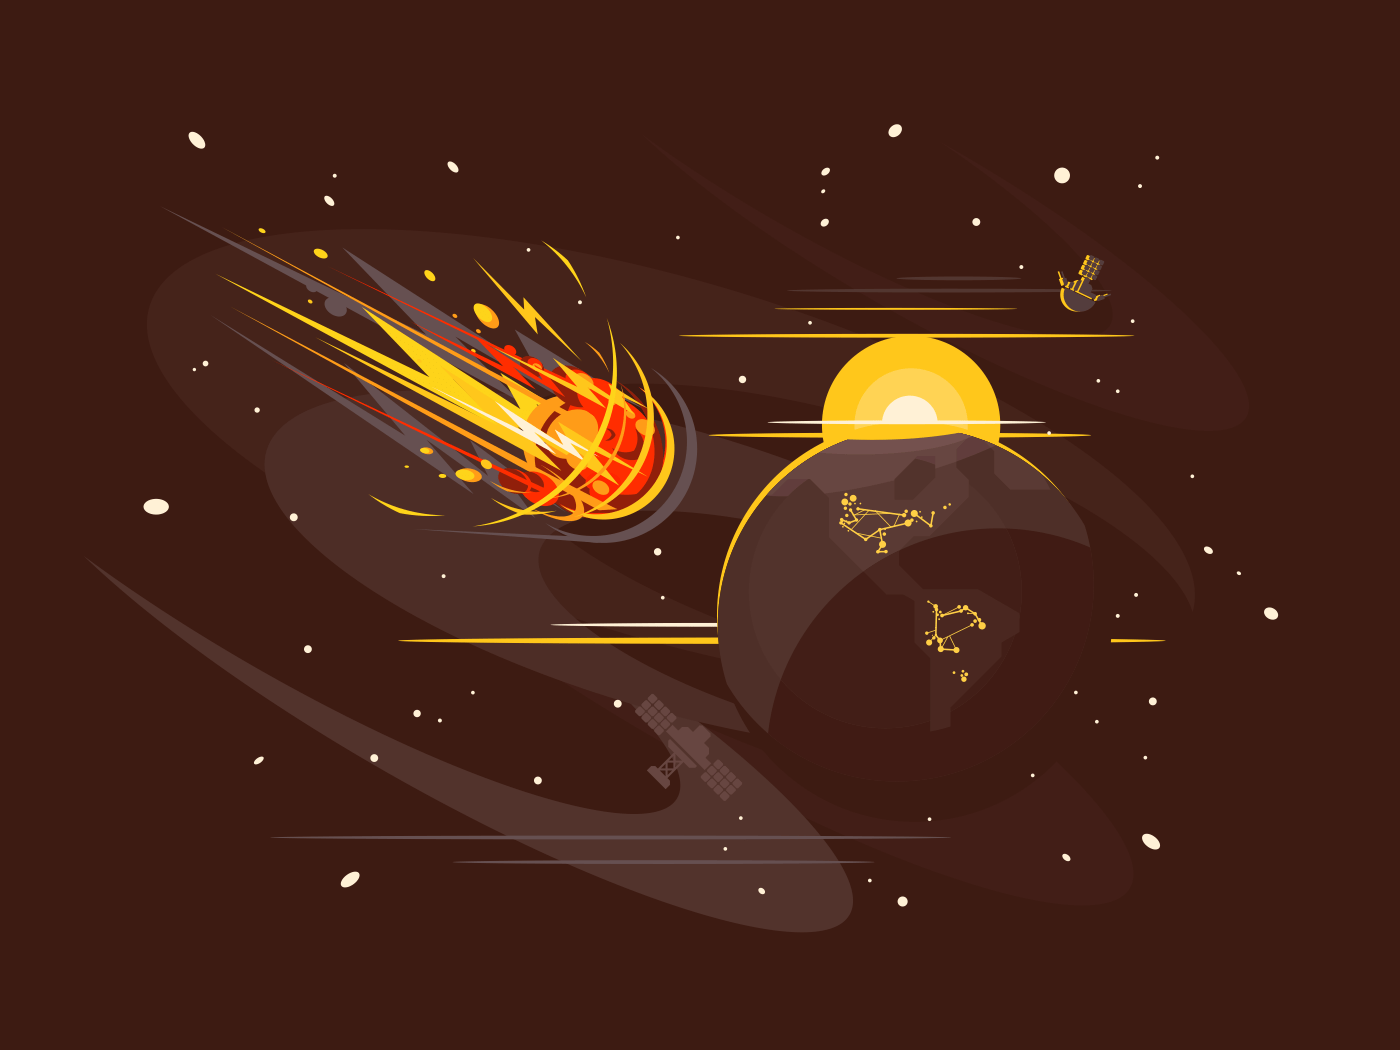 Burning comet in space illustration